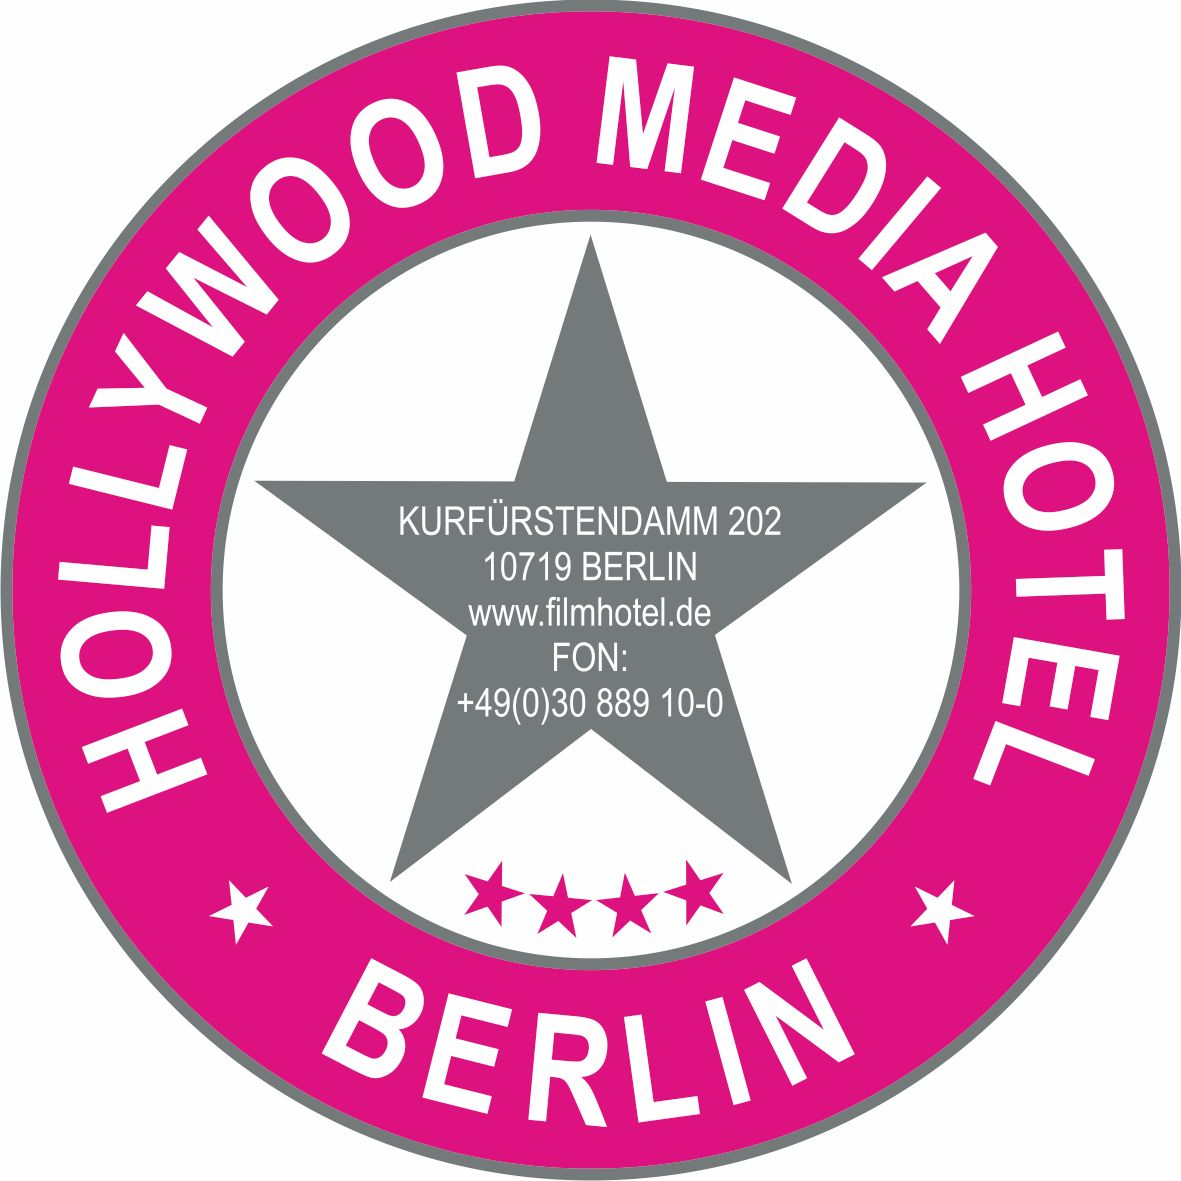 Hollywood Media Hotel, Berlin